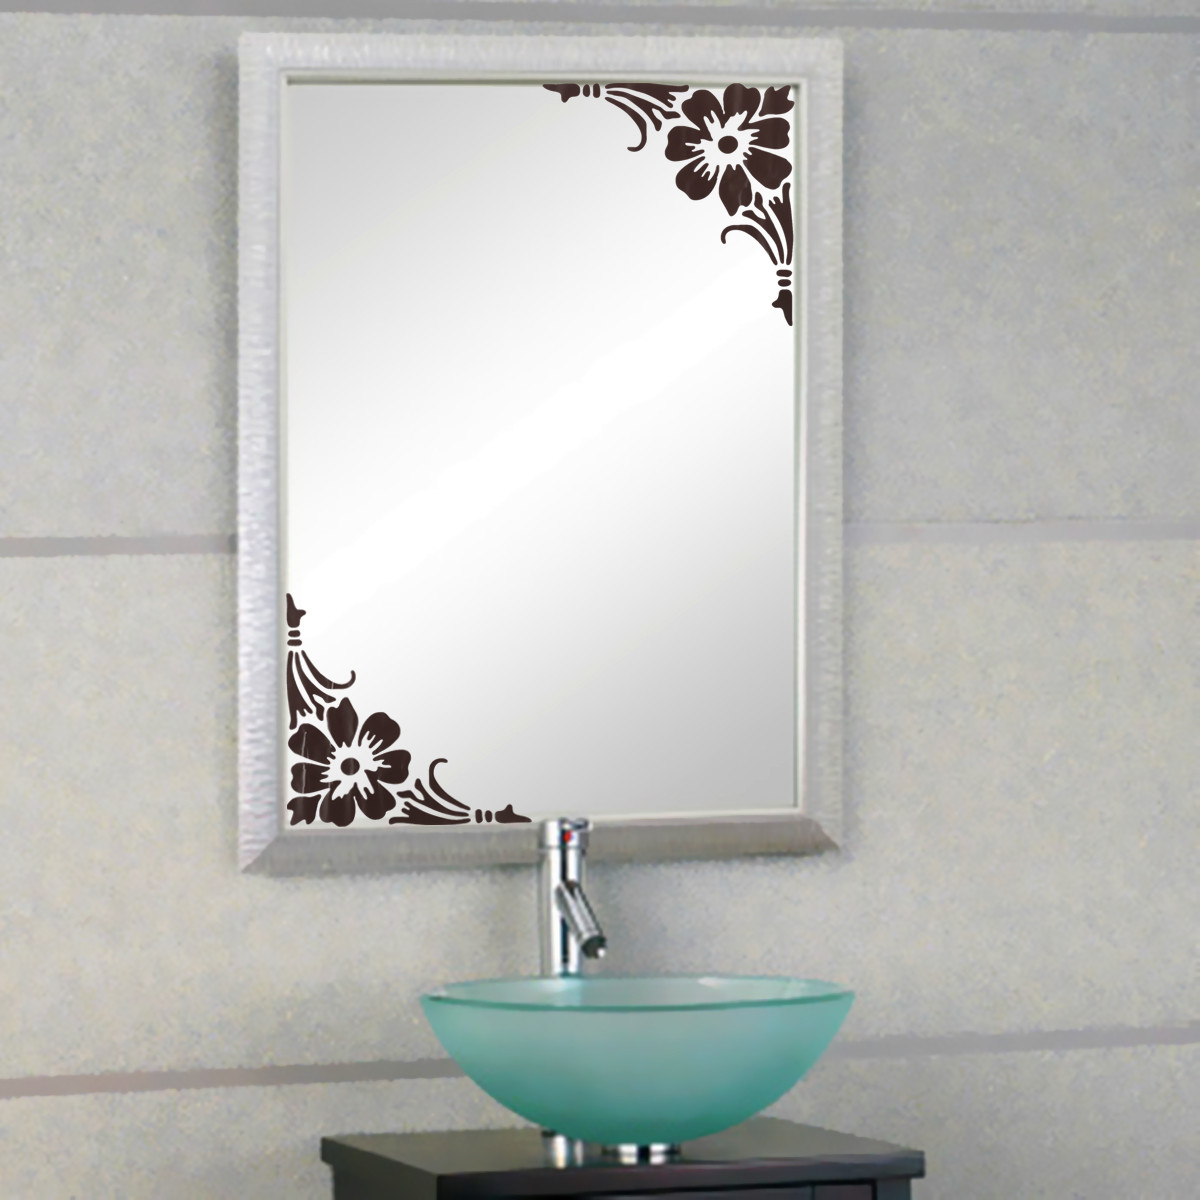 Showcase glass window bathroom mirror wall 2 corner for Sticker miroir salle de bain